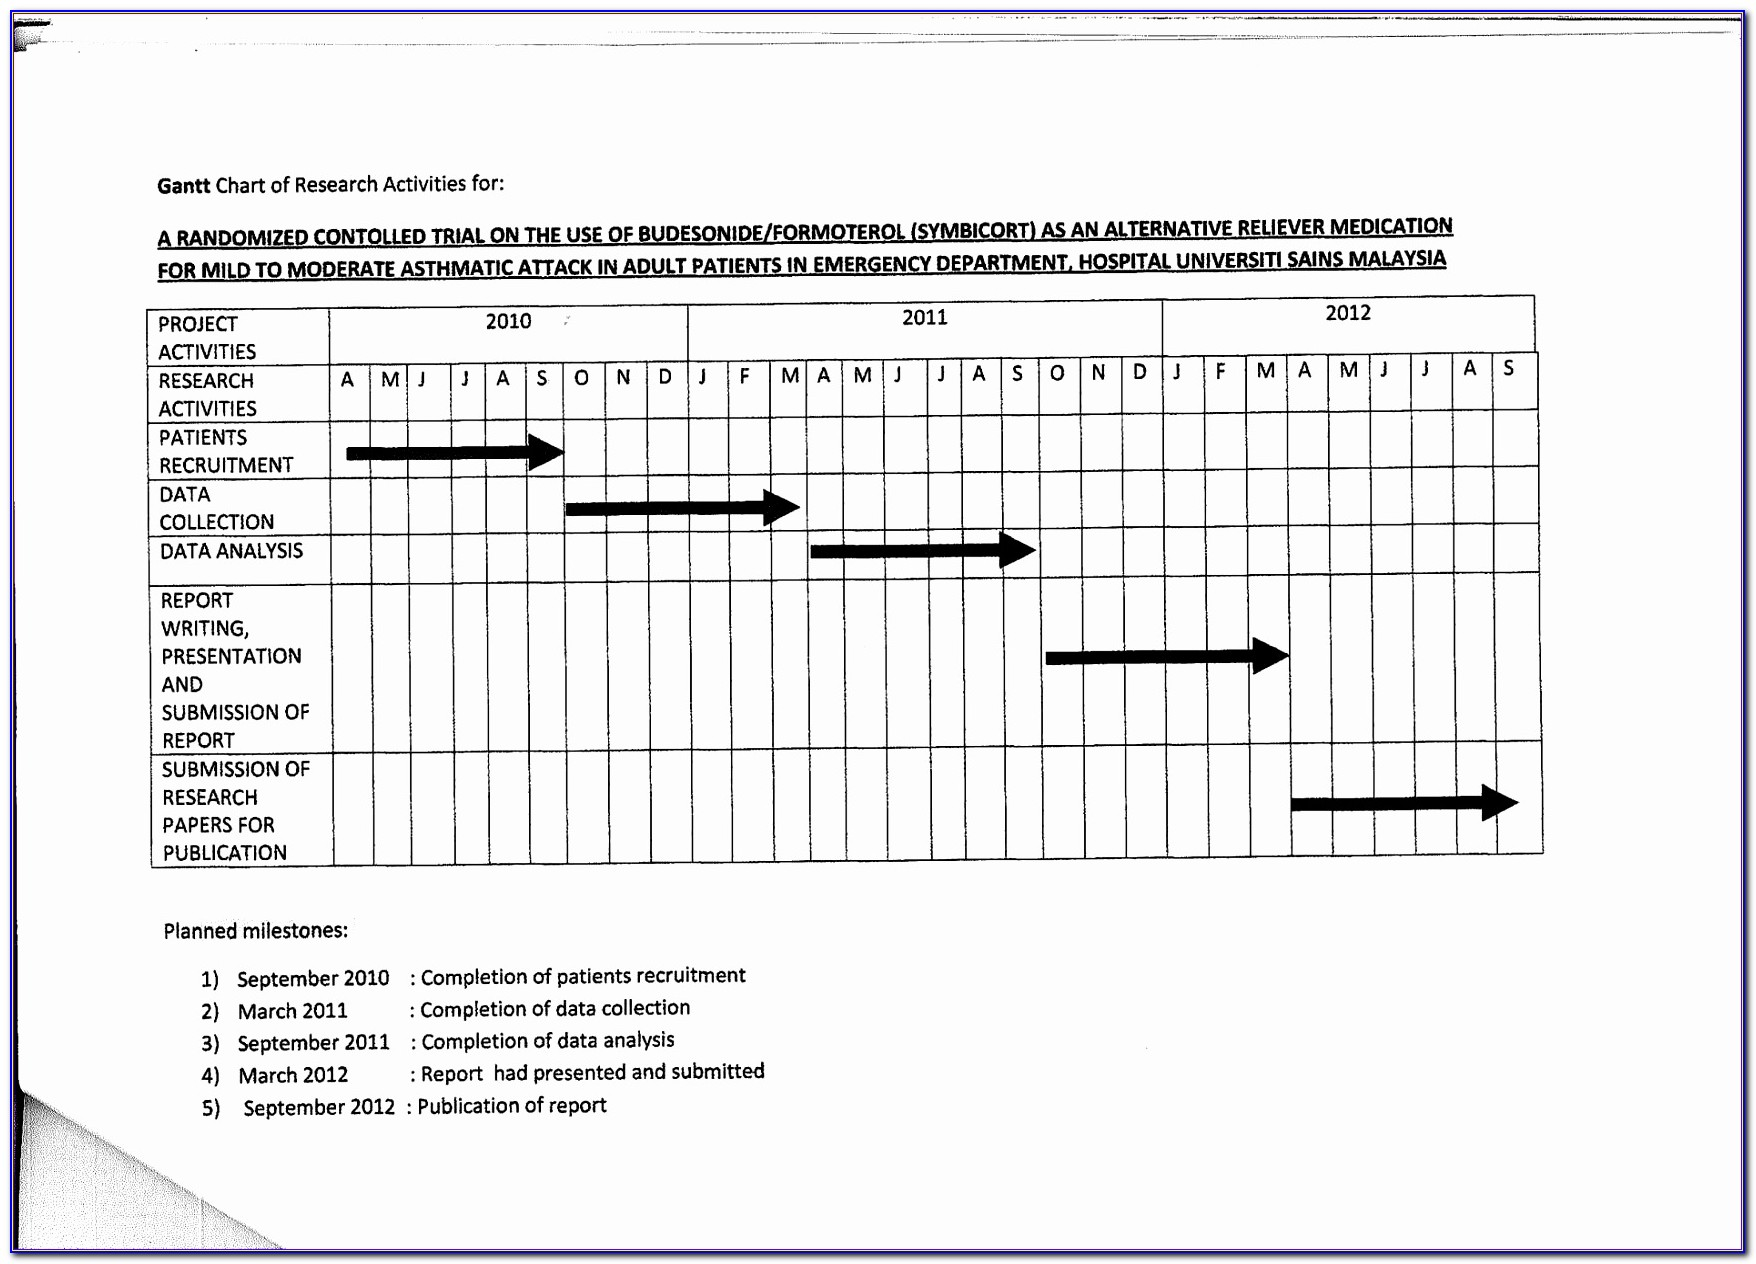 Microsoft Excel Organizational Chart Template Stdj4 Beautiful Simple Gantt Chart Template Excel Download